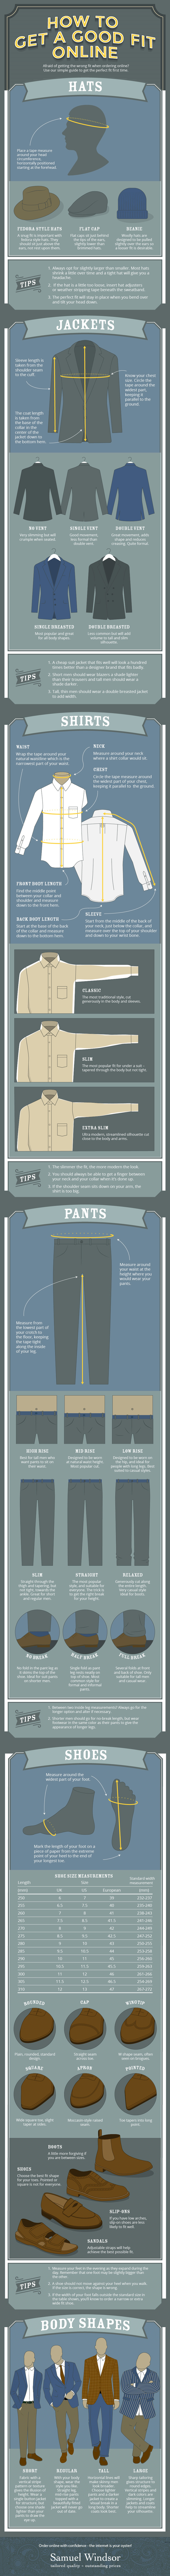 Buying Men's Attire Online: The Perfect-Fit Guide - Infographic